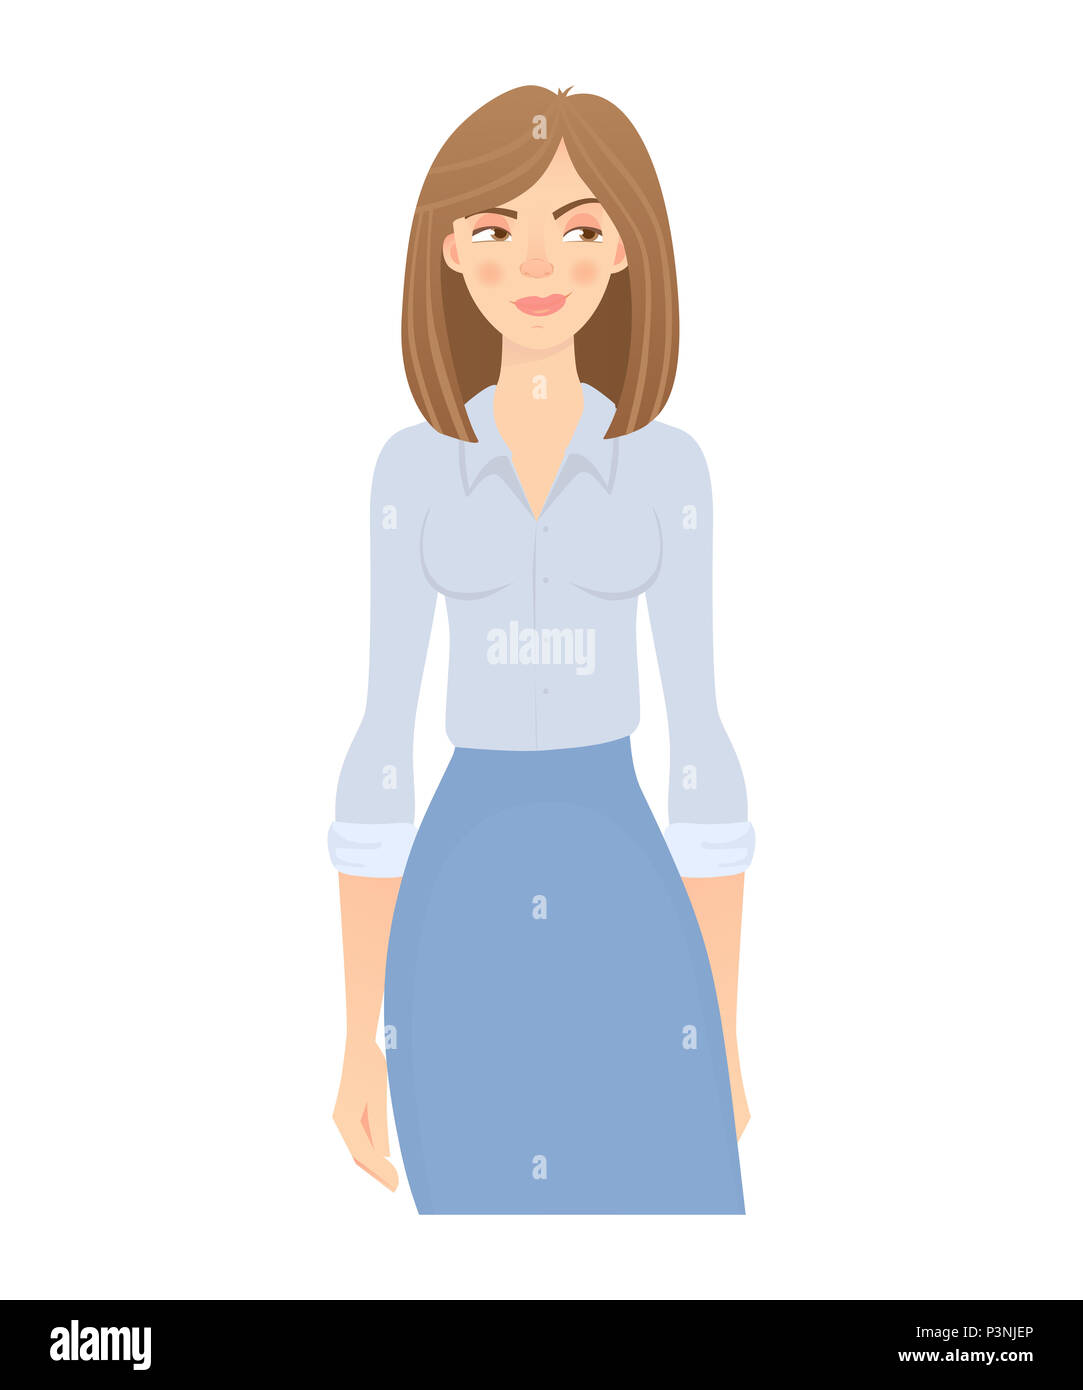 Business woman isolated. Business pose and gesture. Young businesswoman illustration - Stock Image